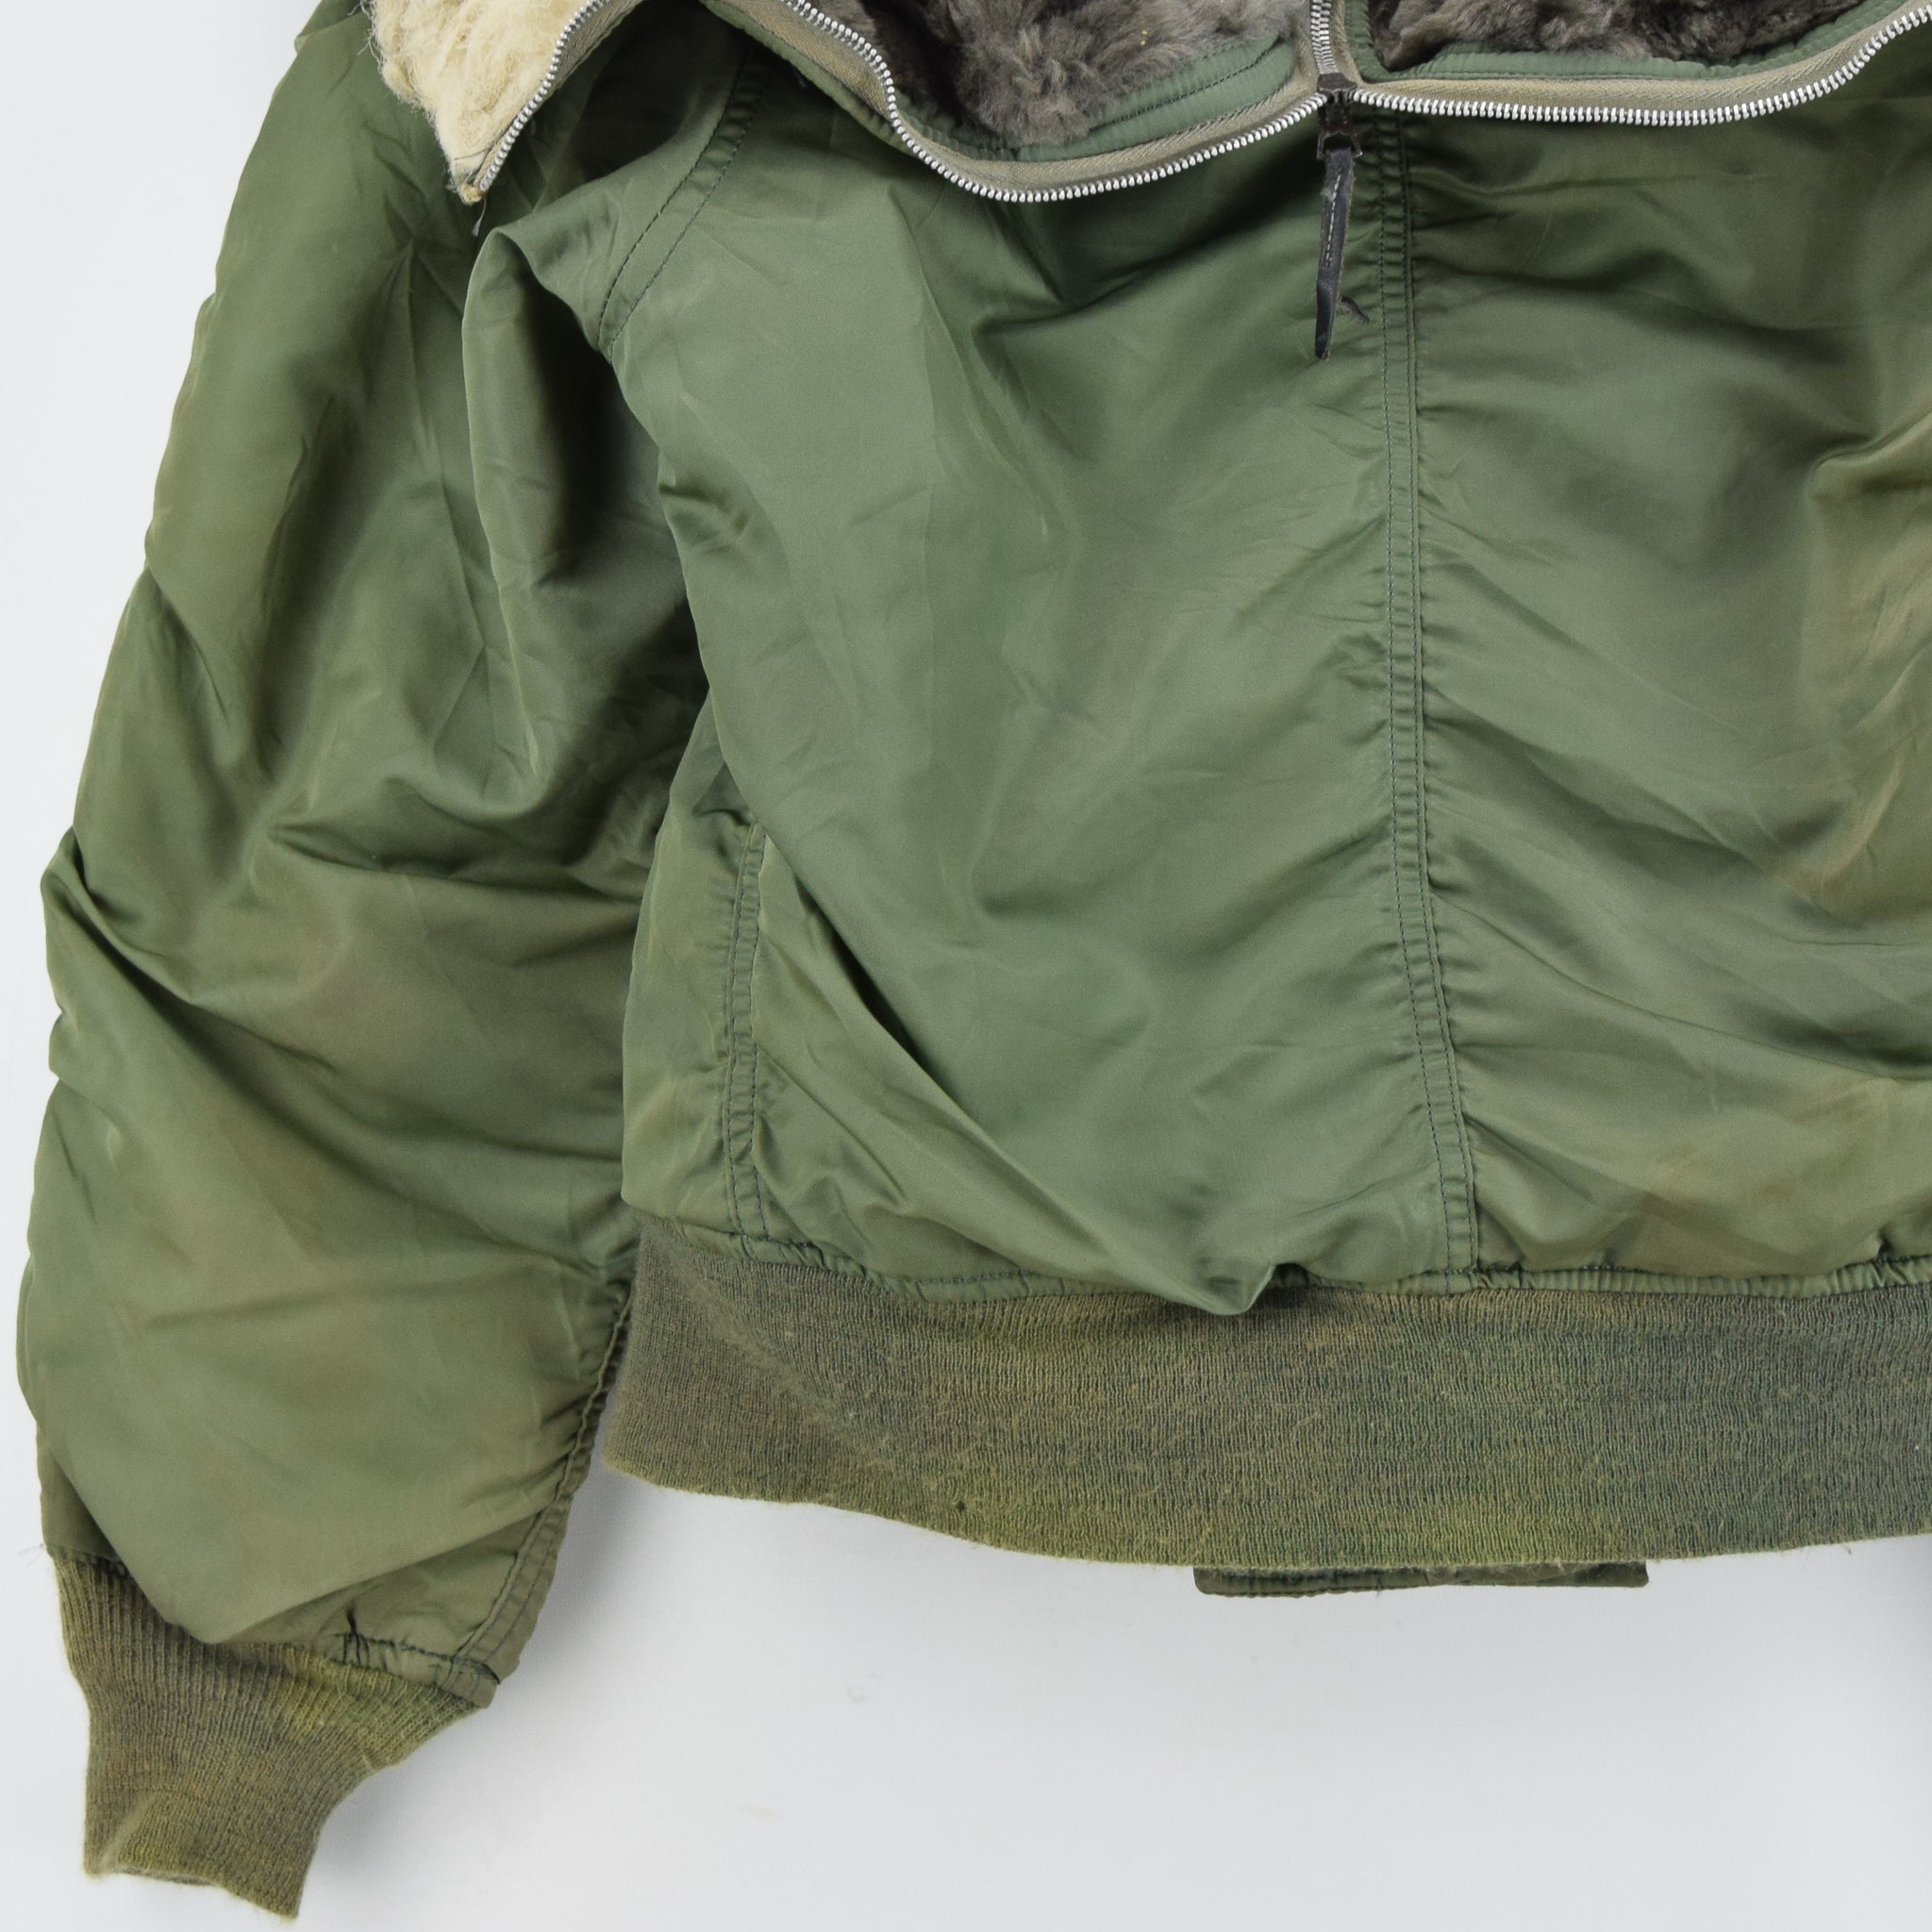 Vintage 70s USAF Alpha Industries N-2B Parka Hooded Bomber Flight Jacket S back hem